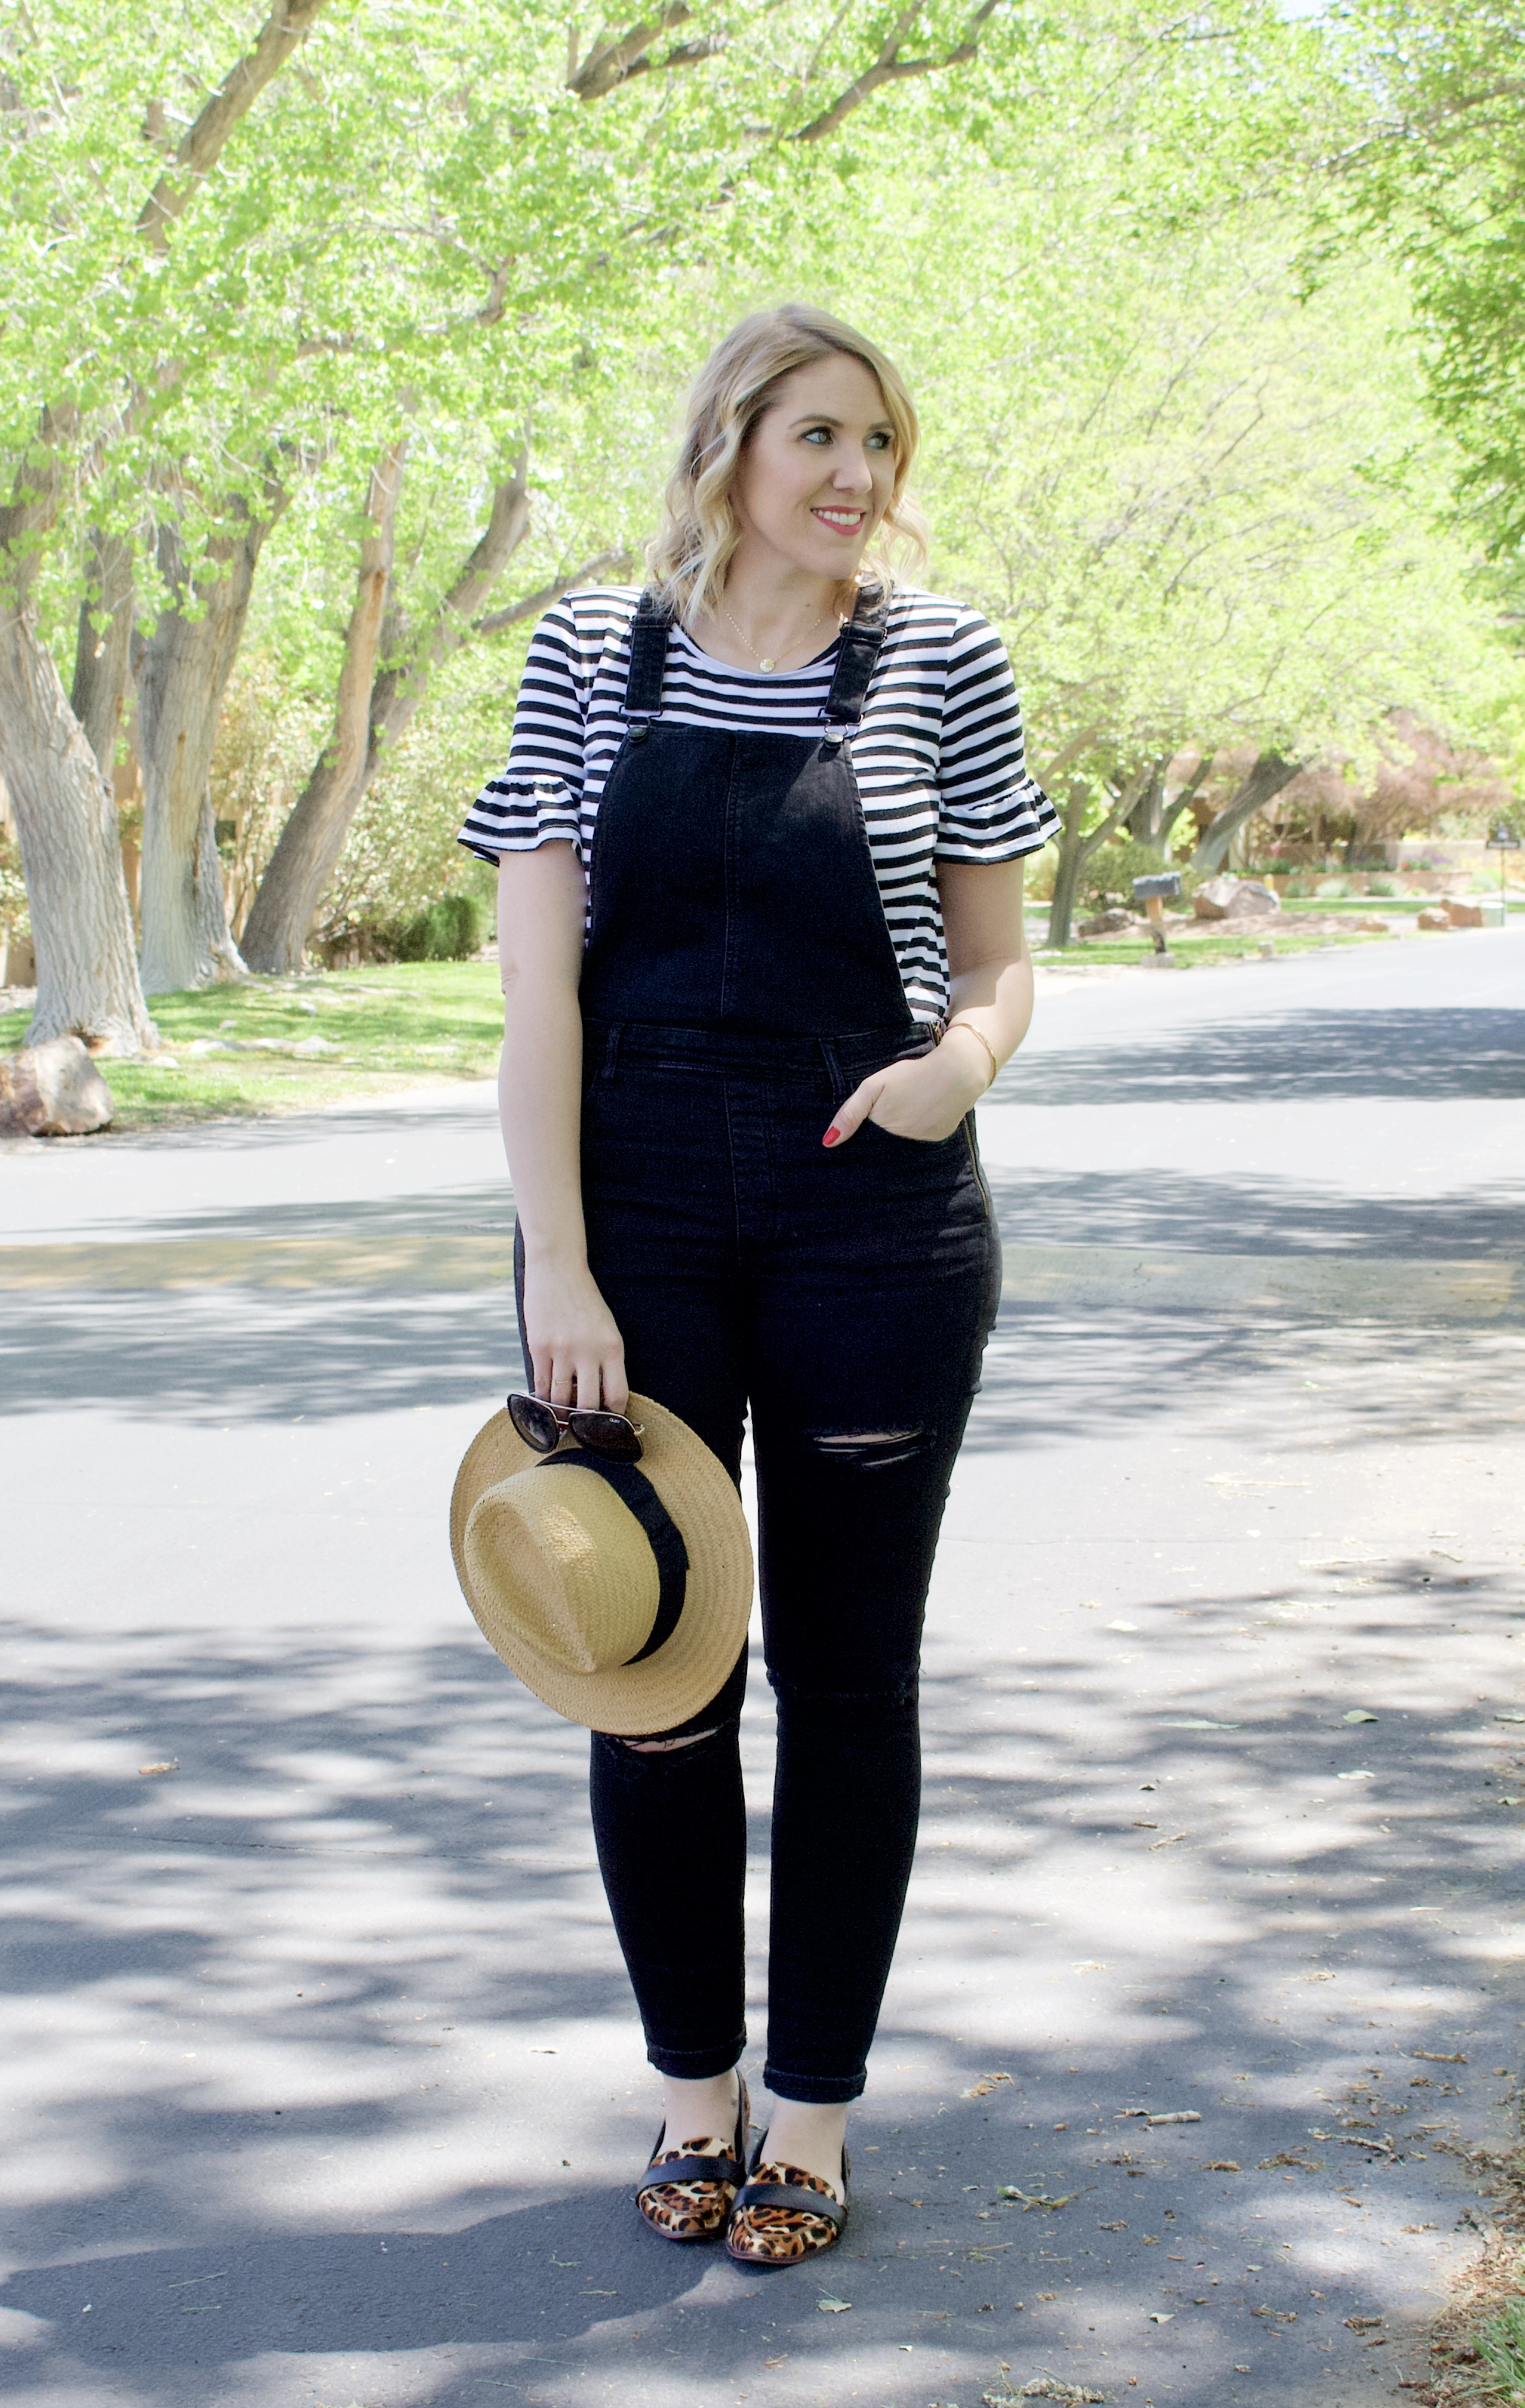 black distressed overalls for tall girls #tallfashion #overalls #springstyle #AE